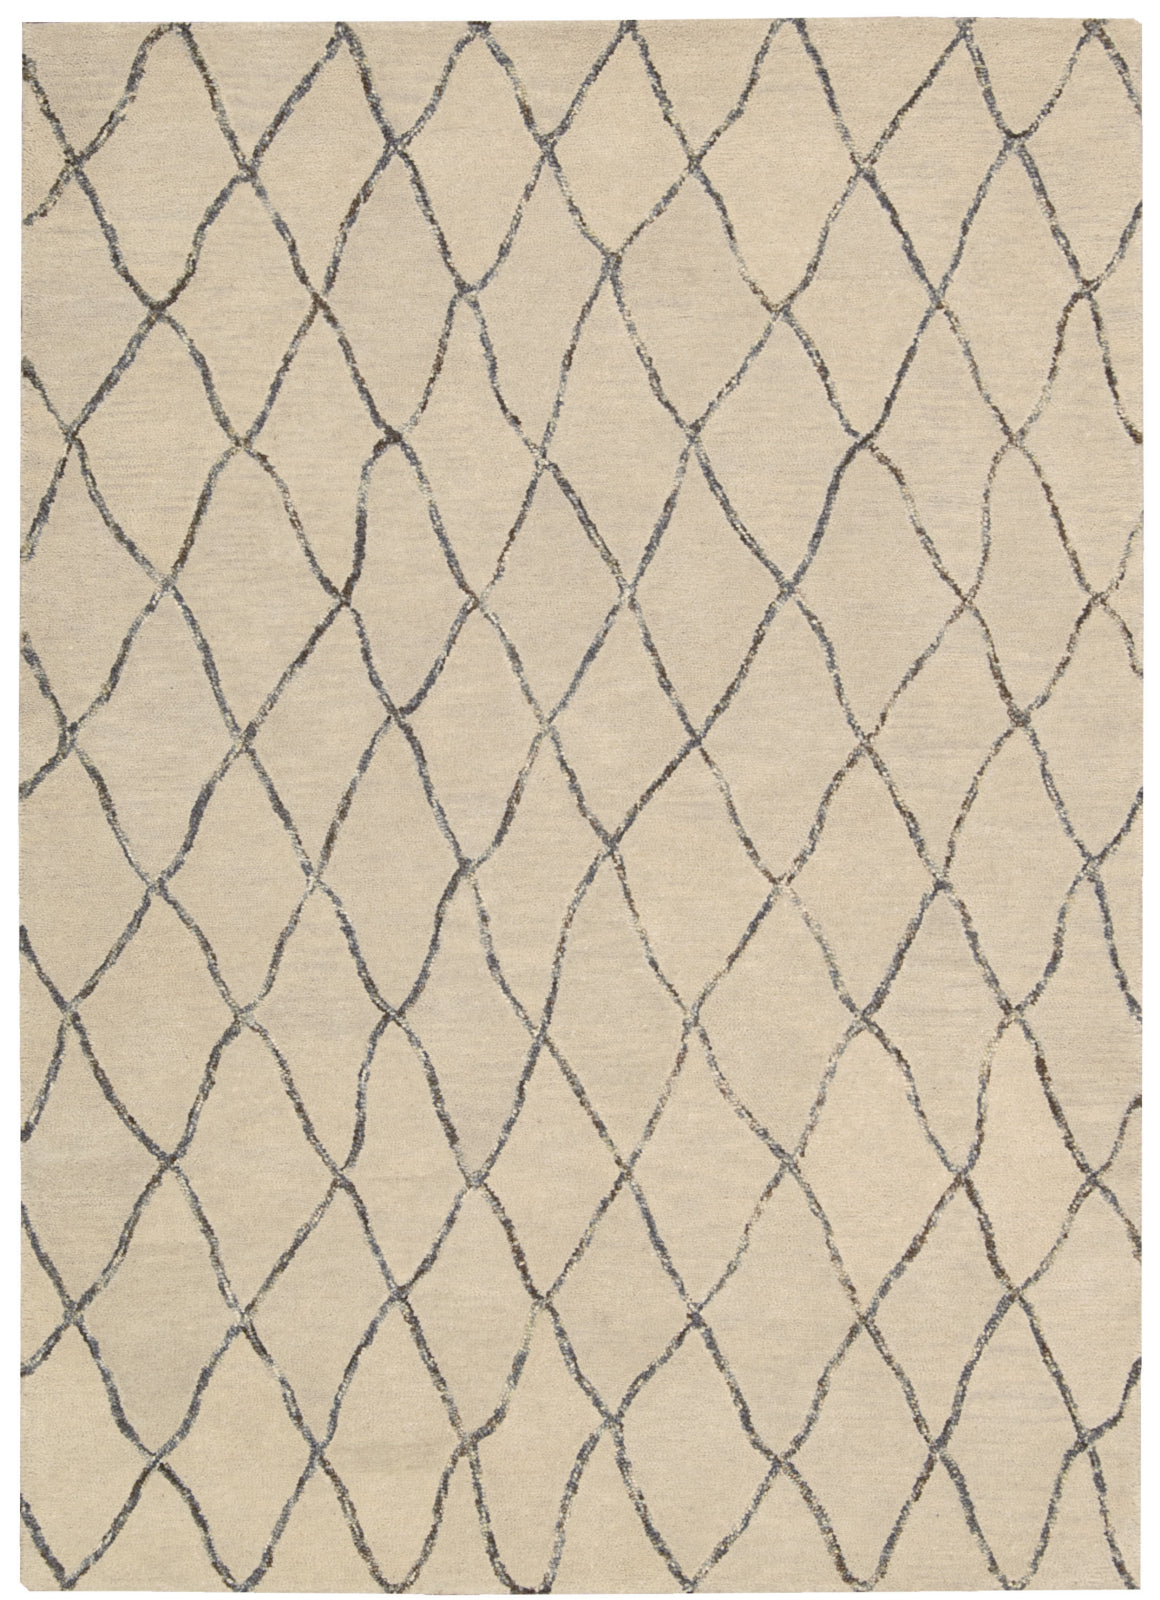 Nourison Intermix INT02 Sand Area Rug by Barclay Butera main image